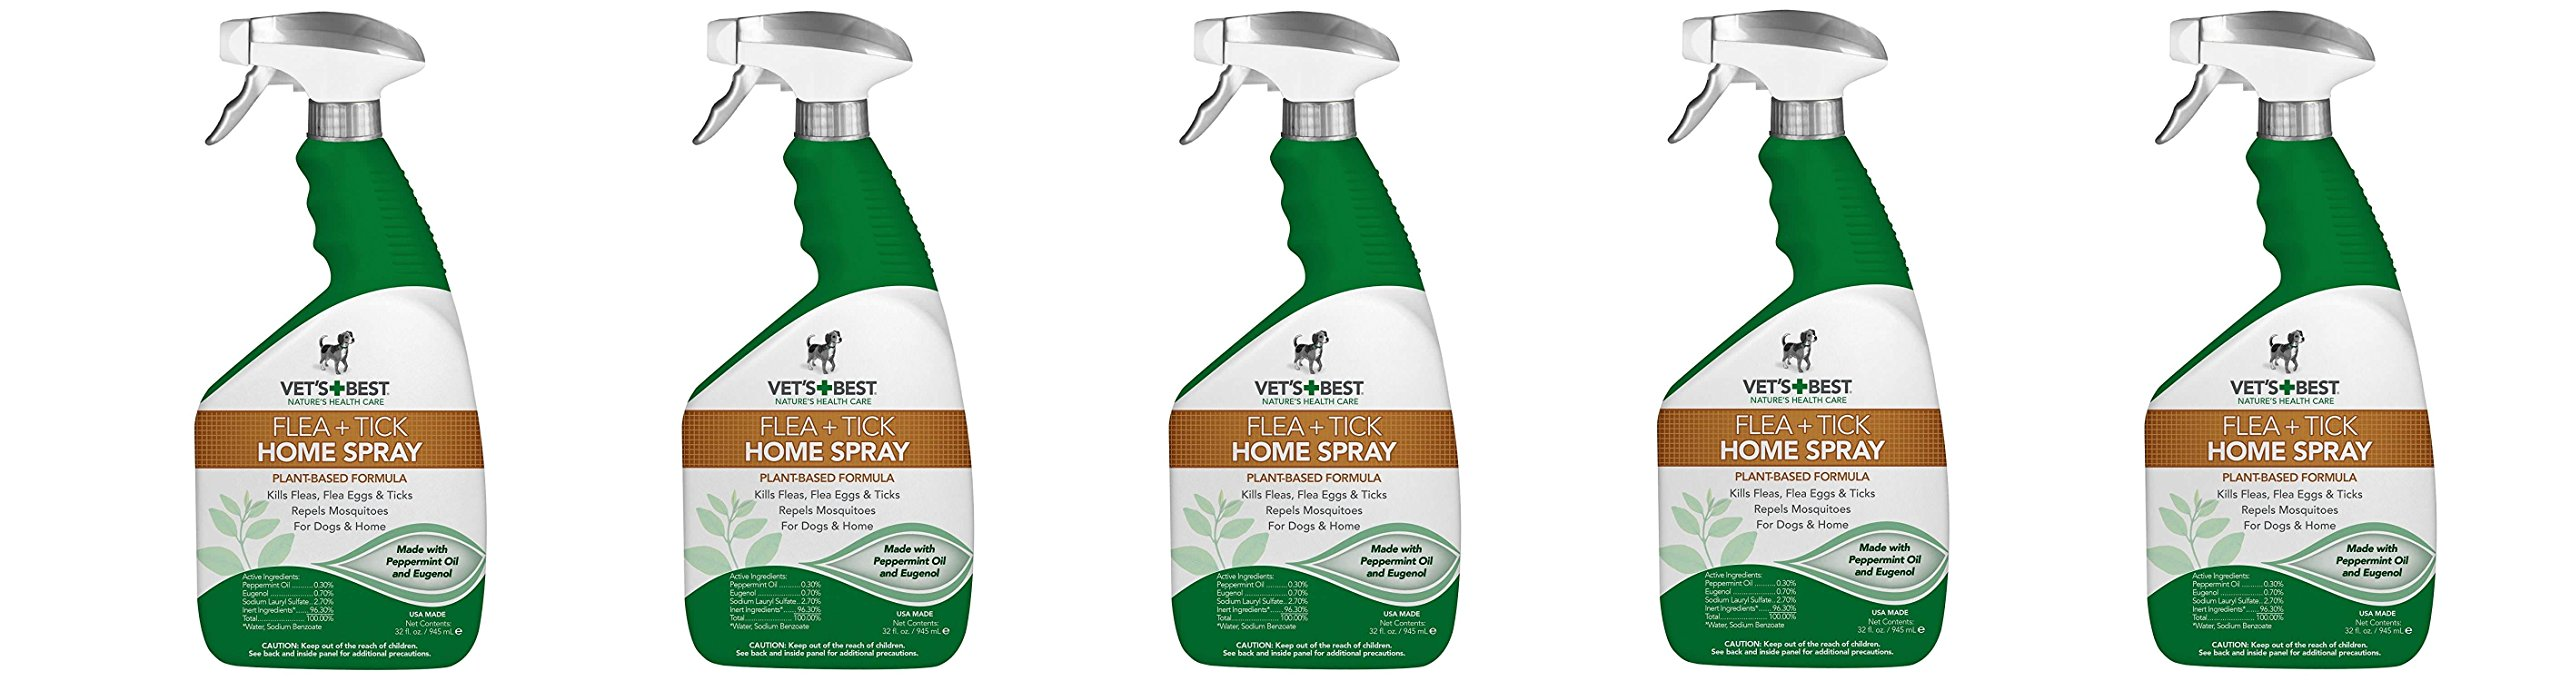 Vets Best ytCxnD Natural Flea and Tick Home Spray, USA Made, 32 oz (5 Pack)